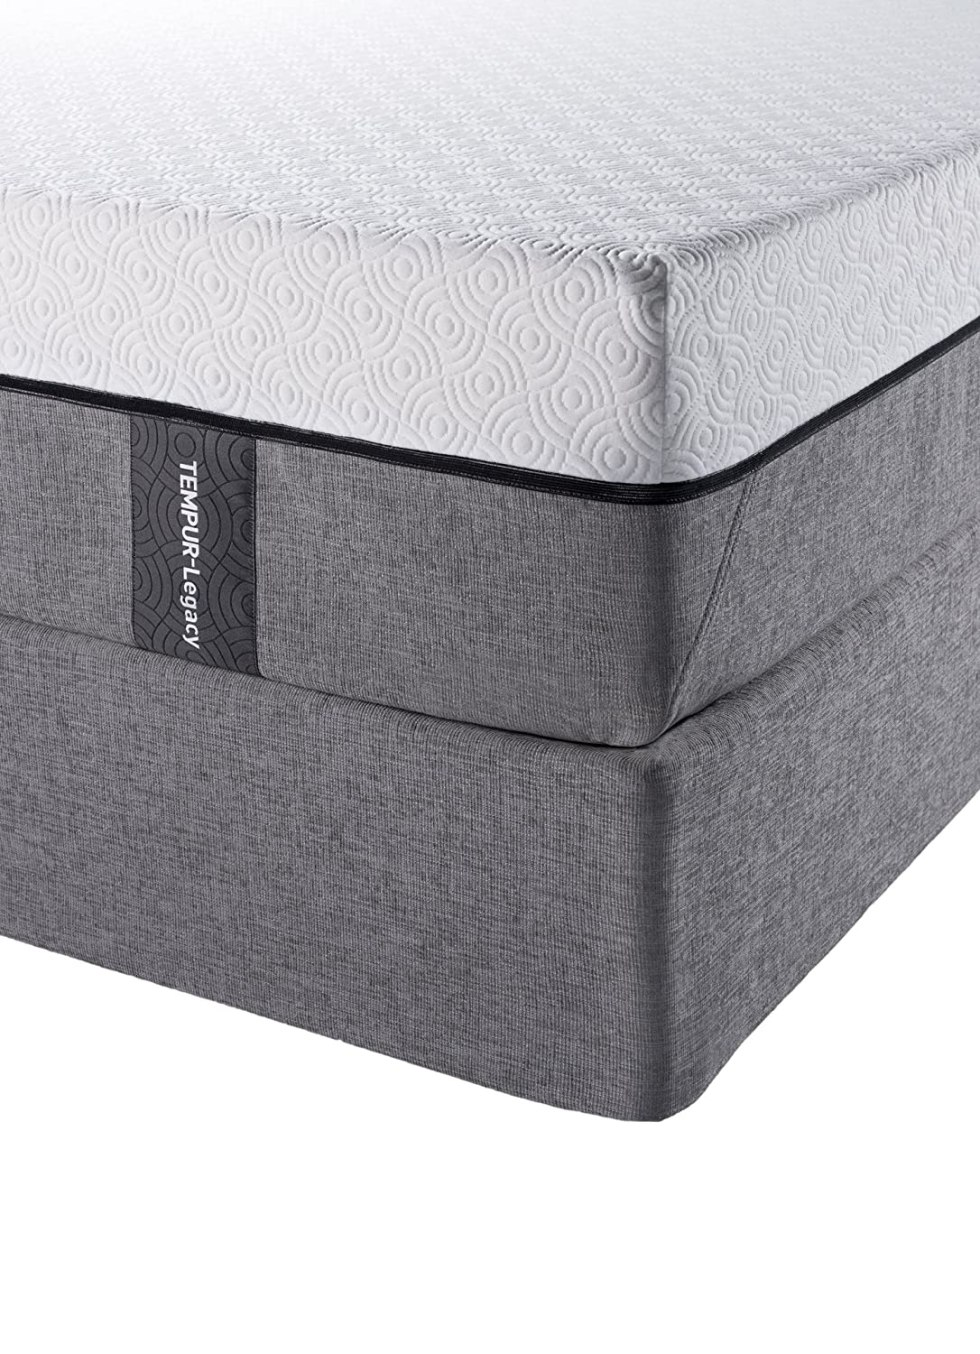 Tempur-Pedic TEMPUR-Legacy Soft Cooling Foam Mattress, King, Made in USA, 10 Year Warranty